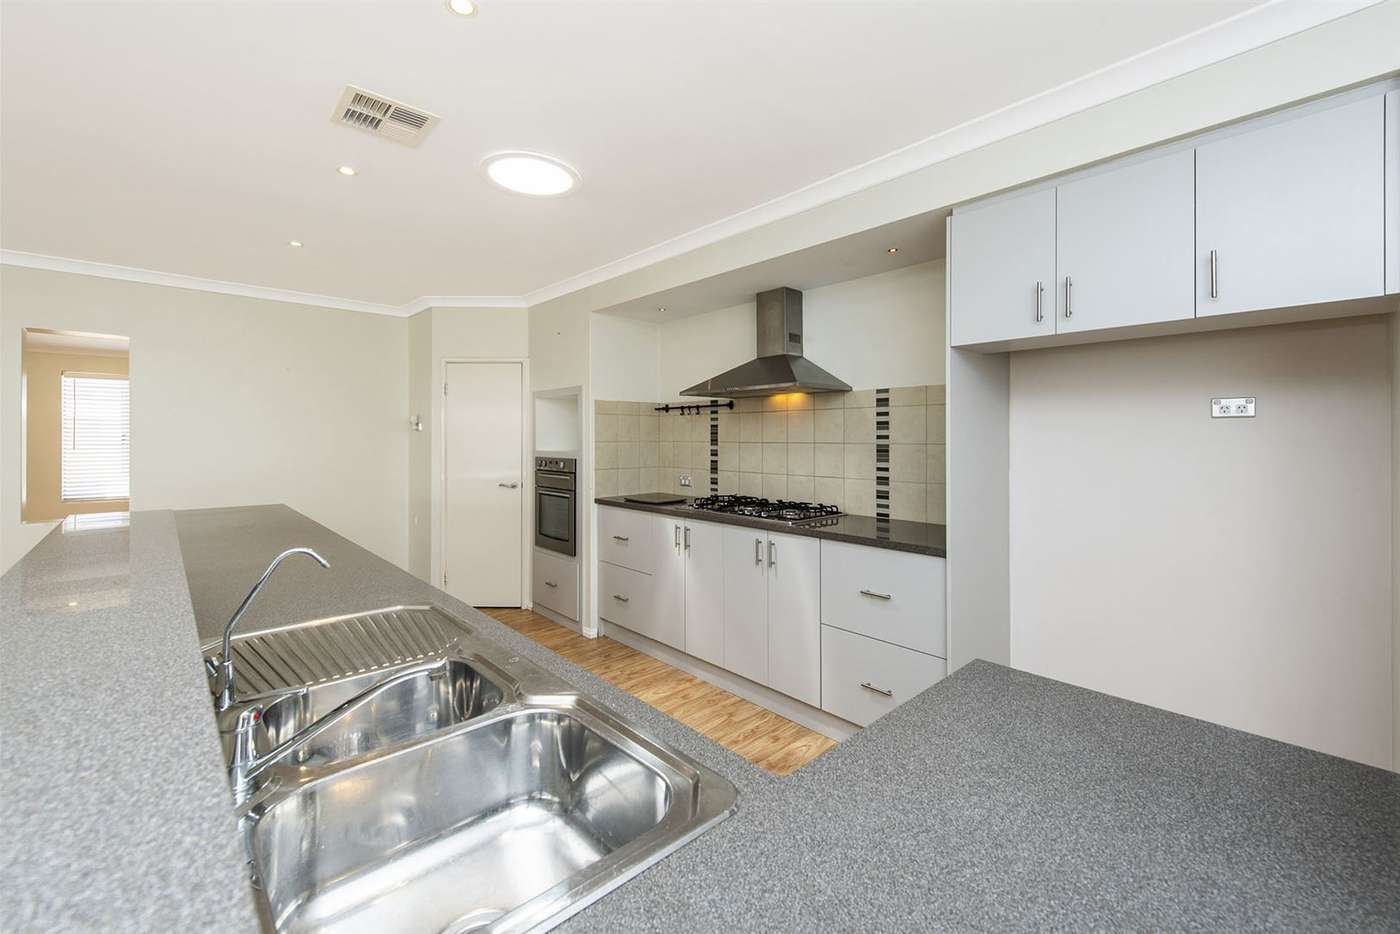 Seventh view of Homely house listing, 9 Tassell Way, Ravenswood WA 6208